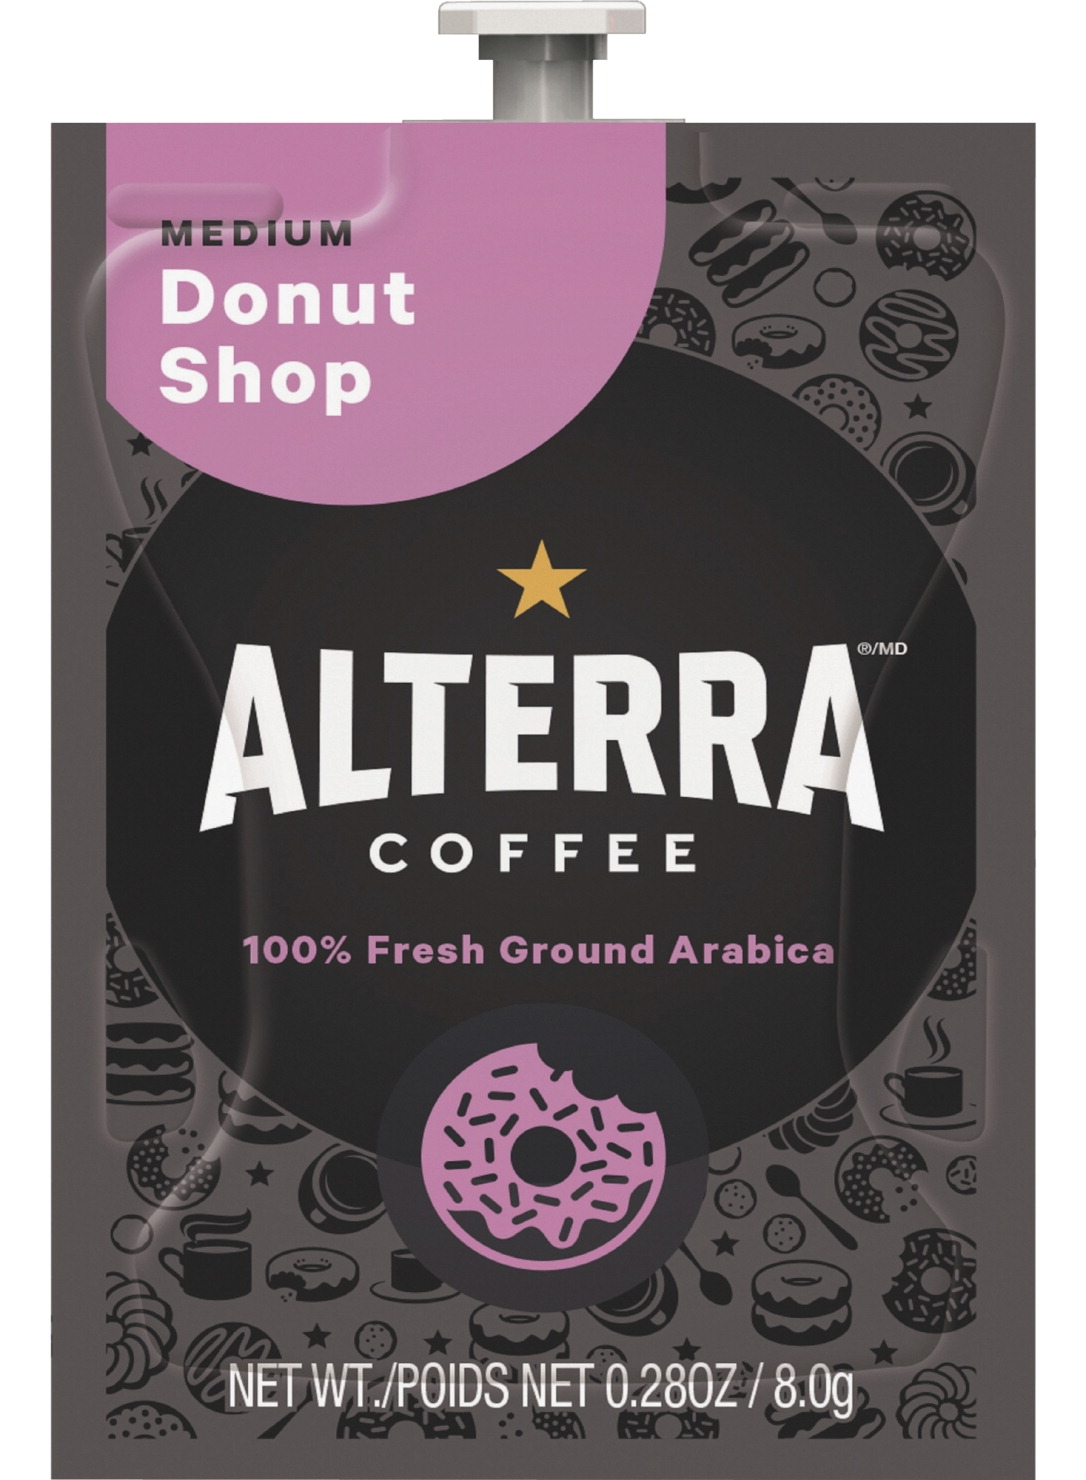 Mars Drinks Alterra Donut Shop Blend Coffee; Med/balanced; Pack Of 100 - 1565263 - Baseball And Softball Baseball Glove Value Packs 1565263